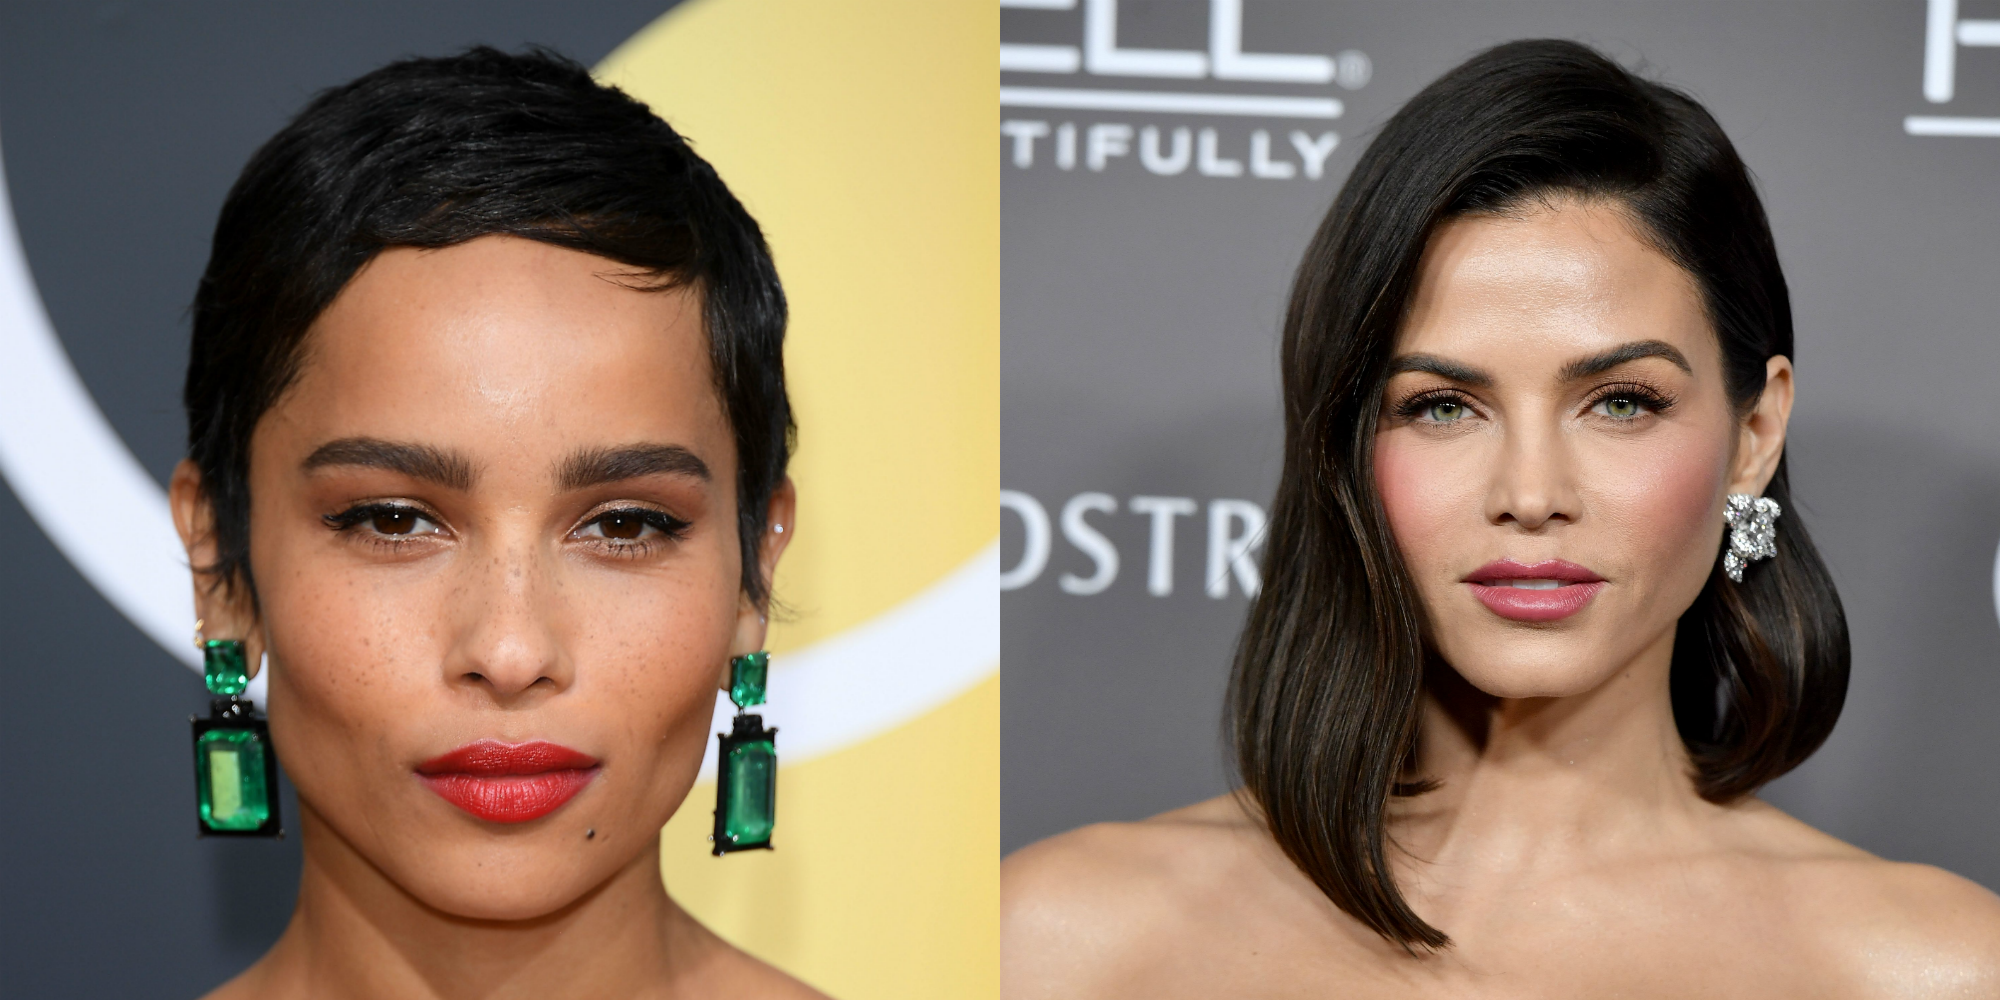 15 Best Short Hairstyles for 2020 , How to Style Short Hair